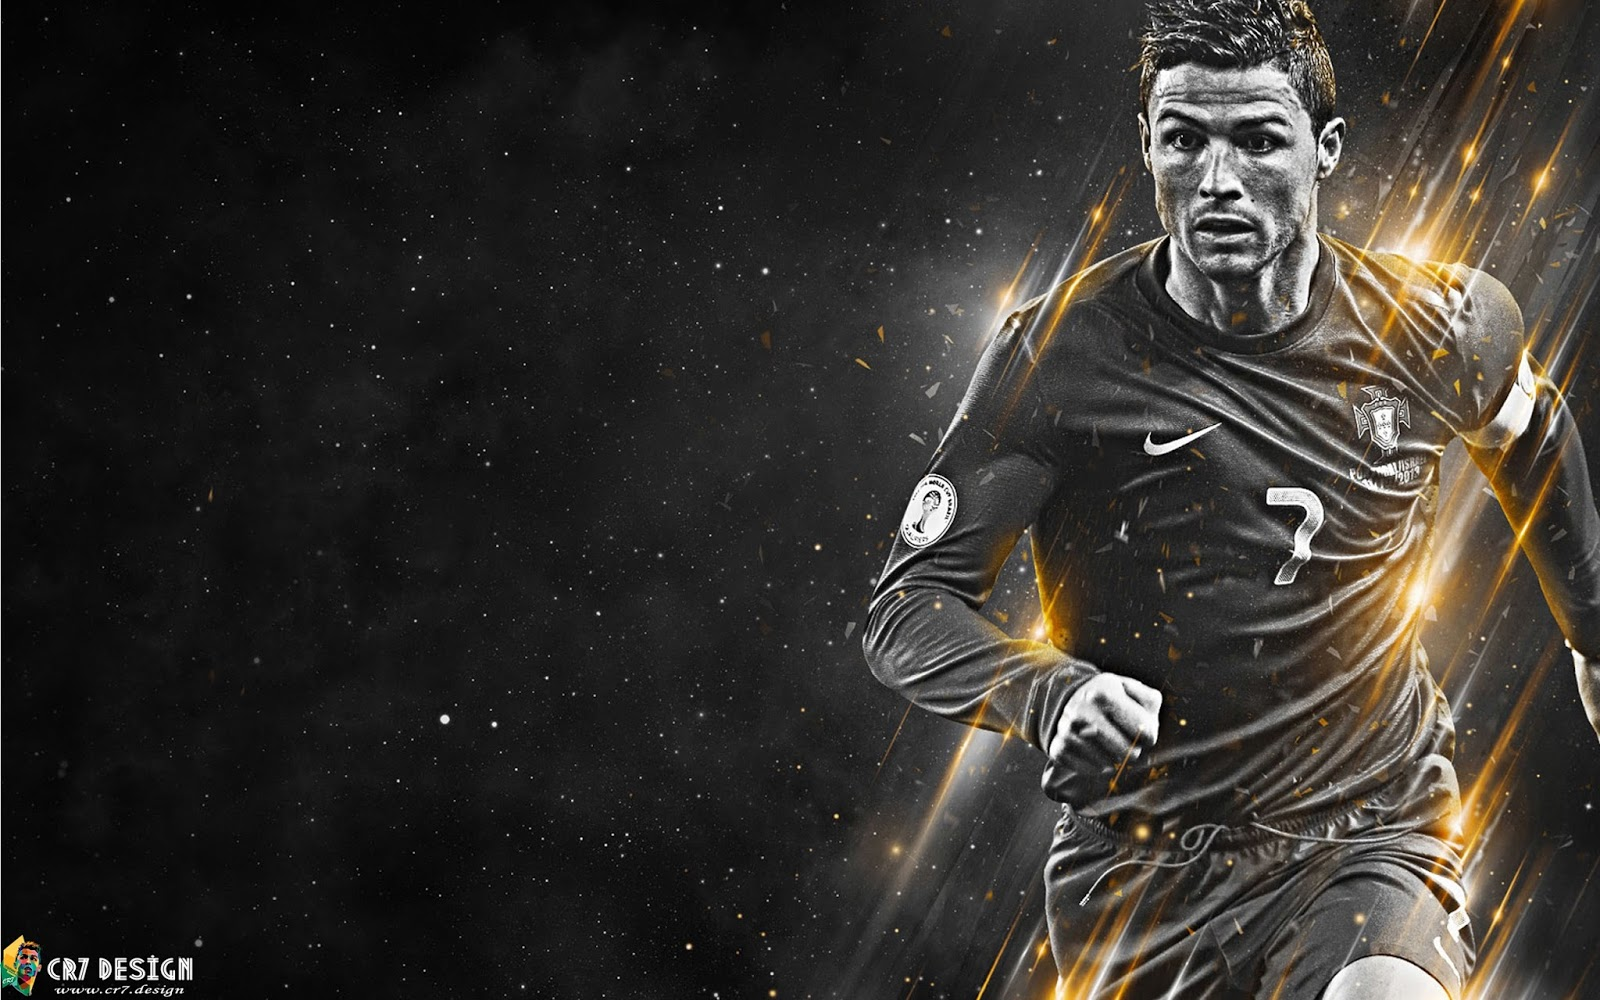 ciristiano-ronaldo-wallpaper-design-113